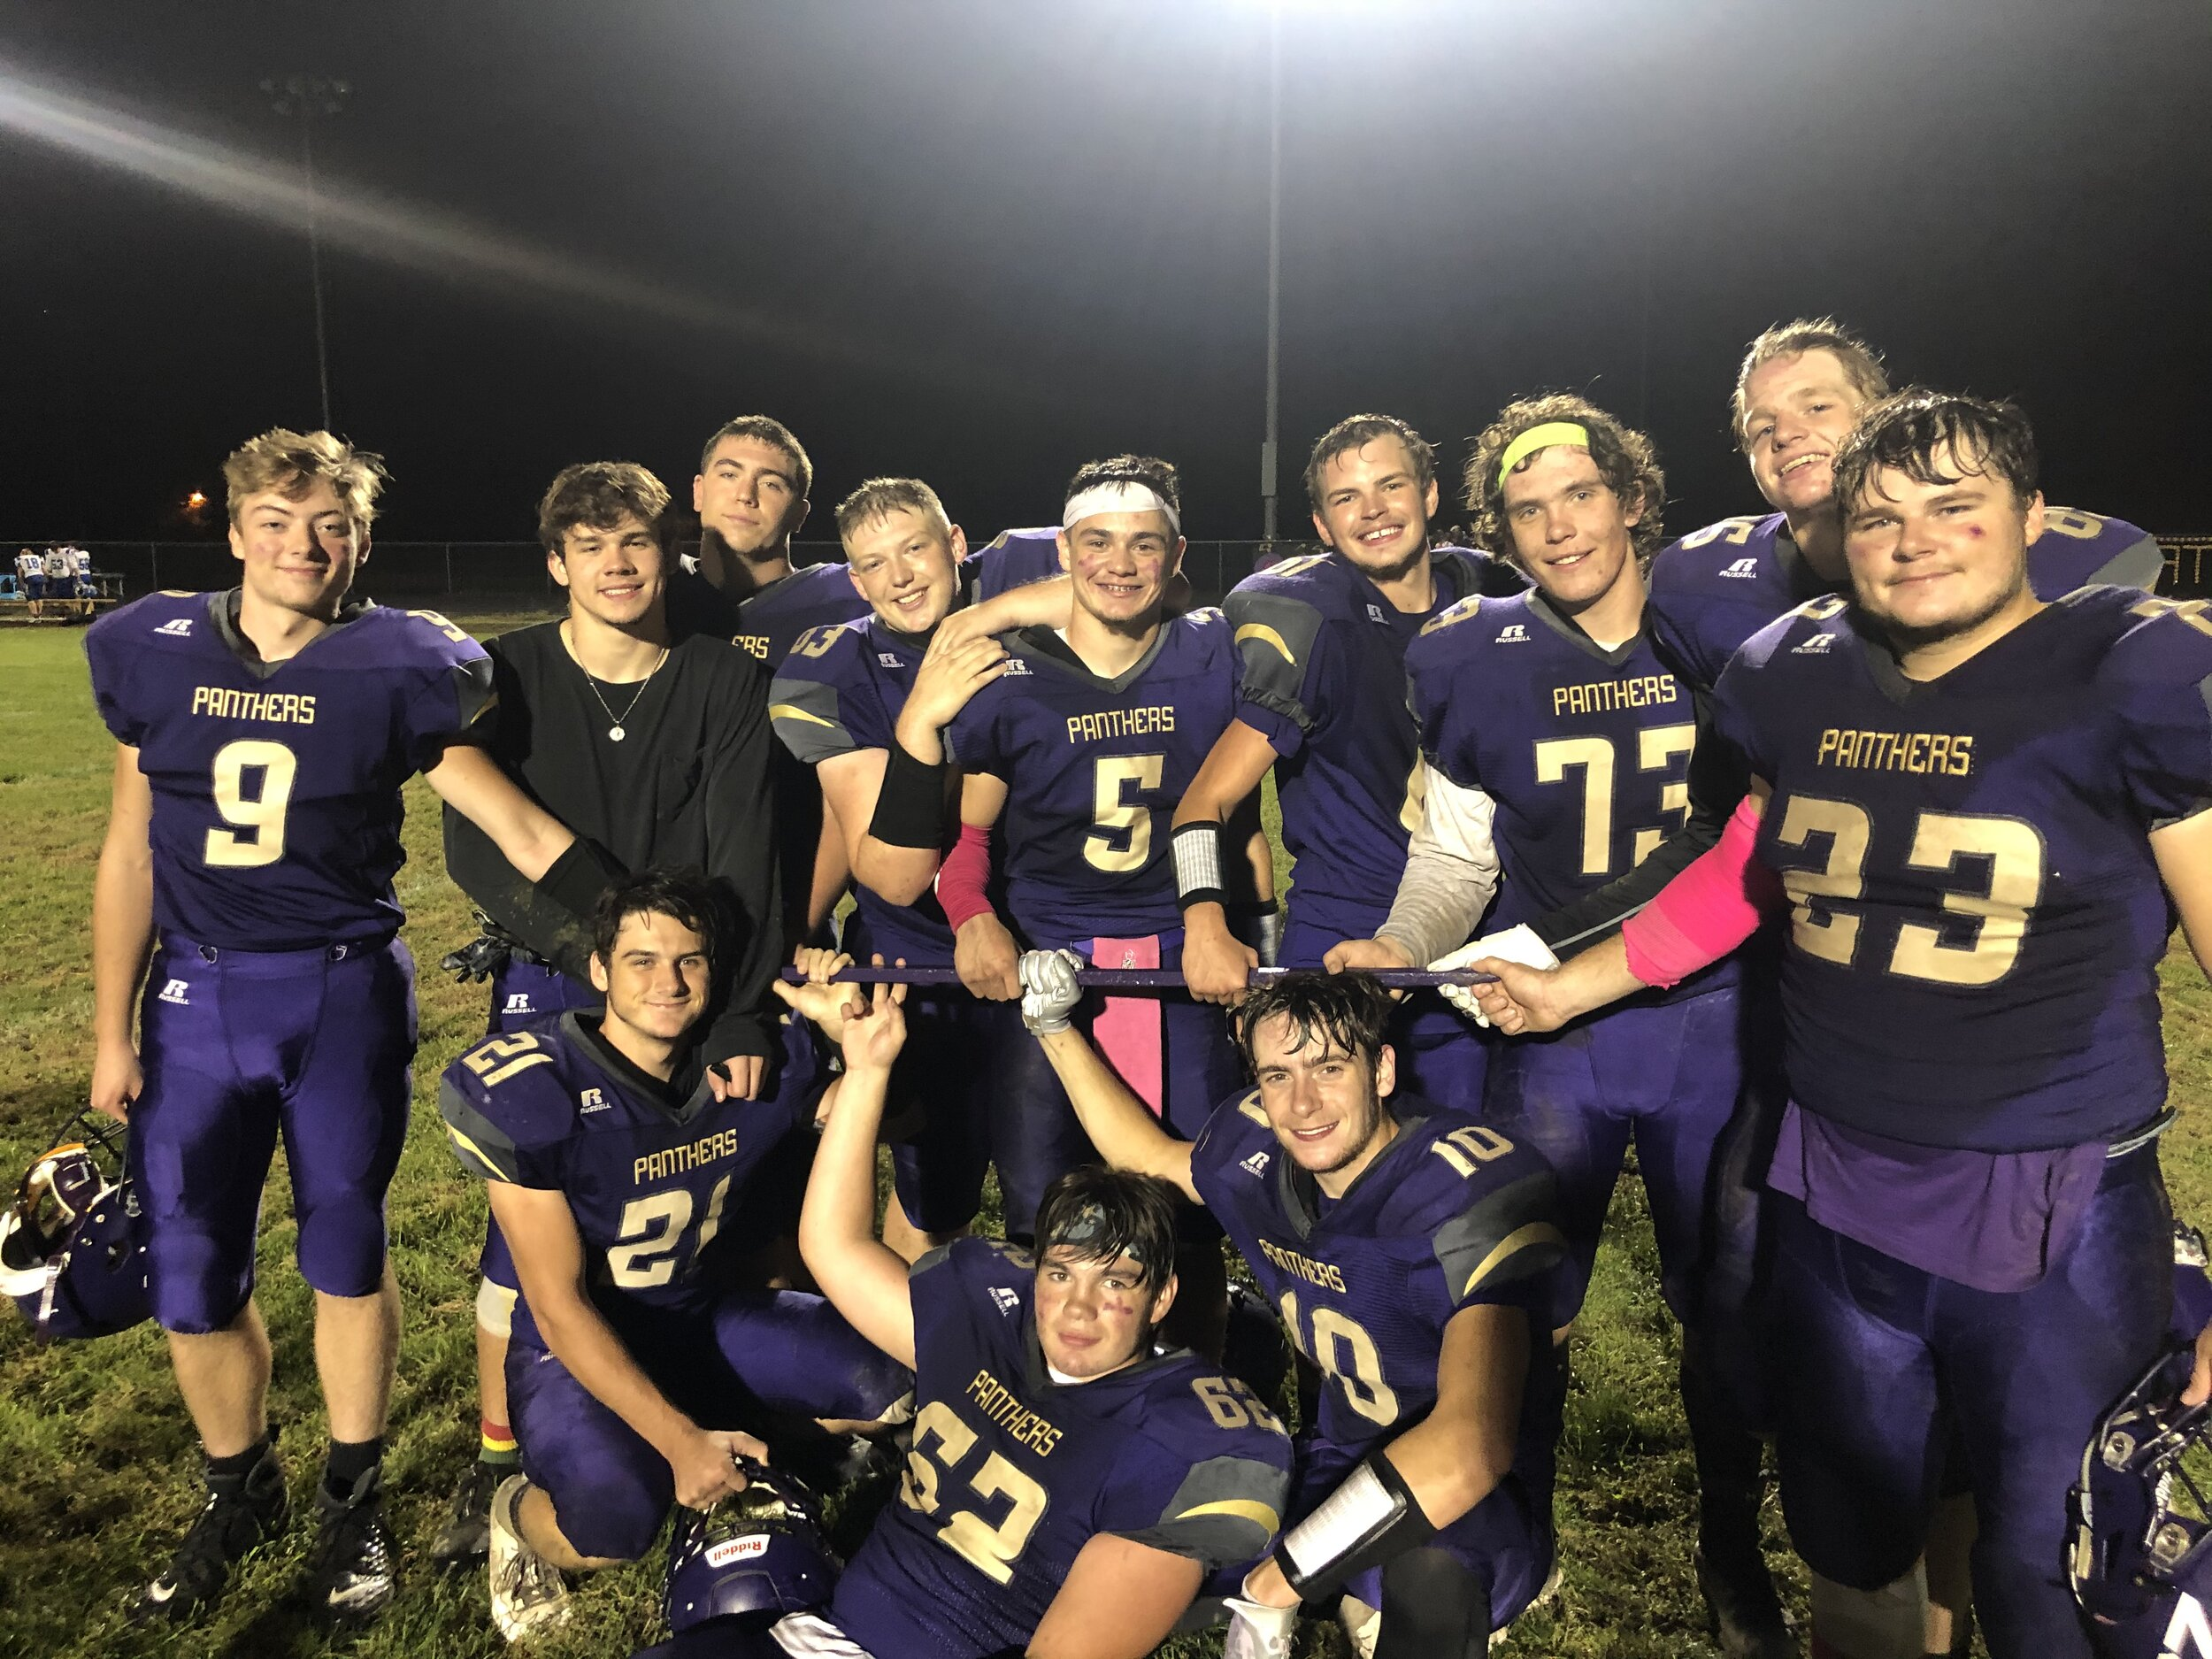 BREANNA CHEADLE/Special to the Citizen  North Platte players celebrate after keeping the Tobacco Stick following a 44-26 victory over West Platte on Friday, Oct. 4 in Dearborn.